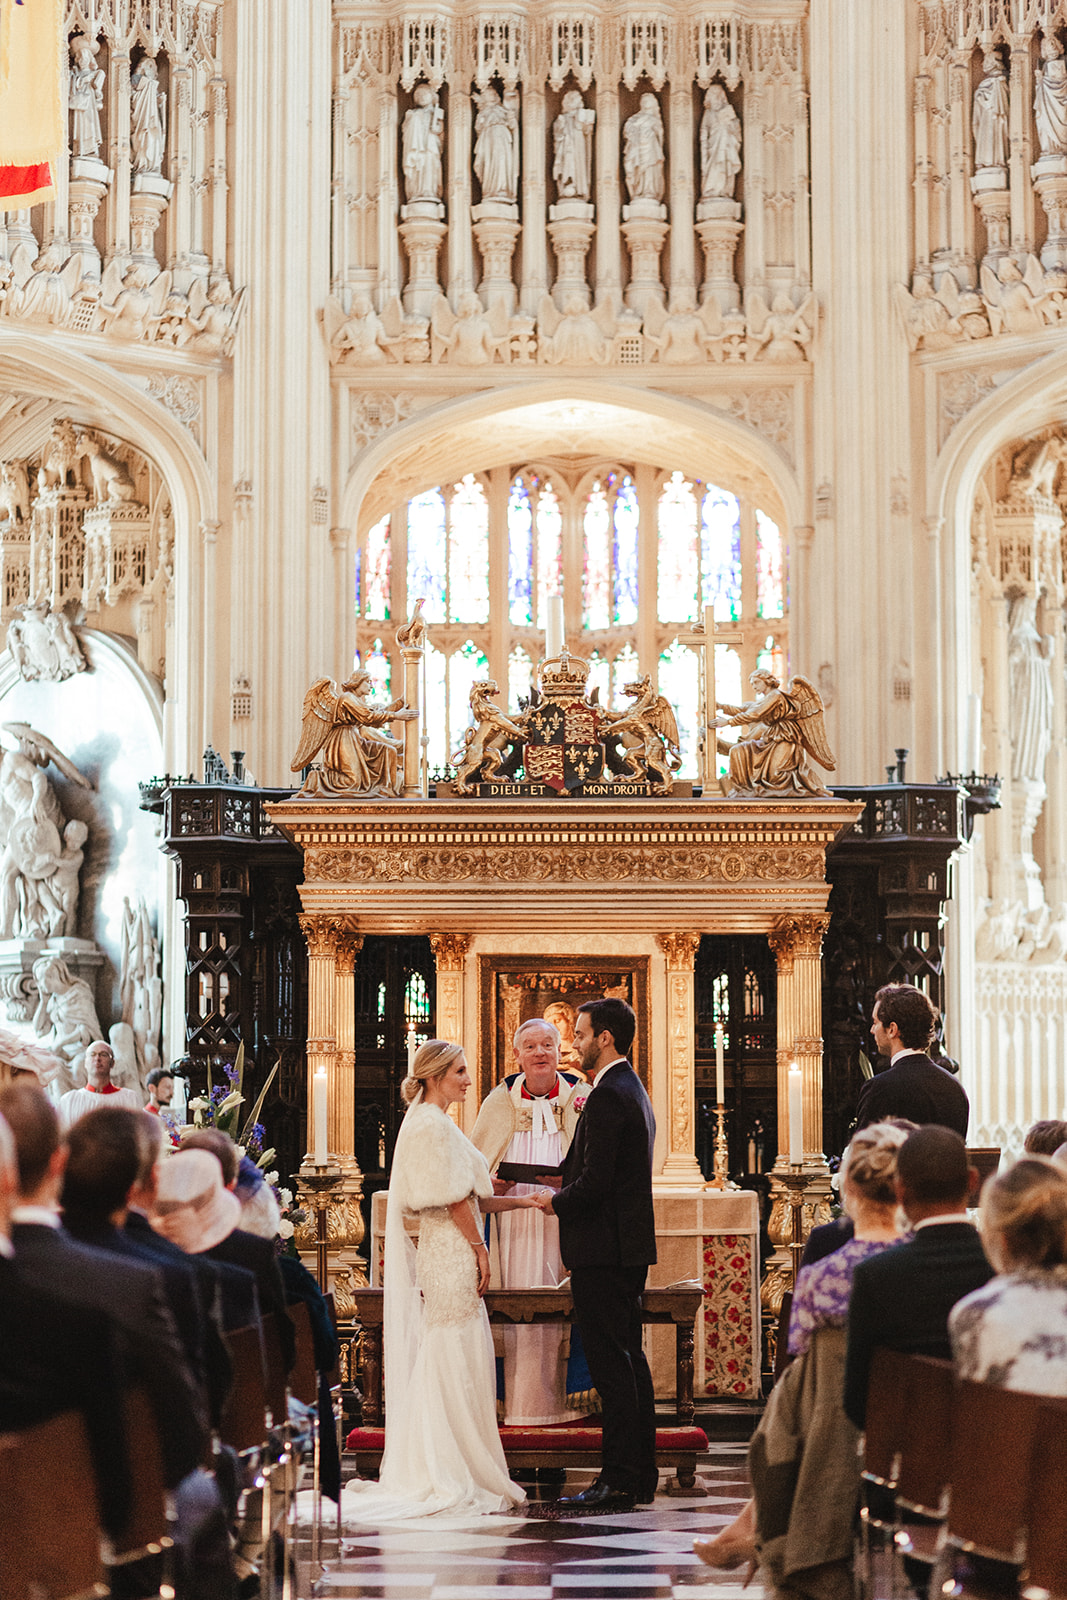 A westminster Abbey wedding ceremony photographed by natural London wedding photographer Matilda Delves